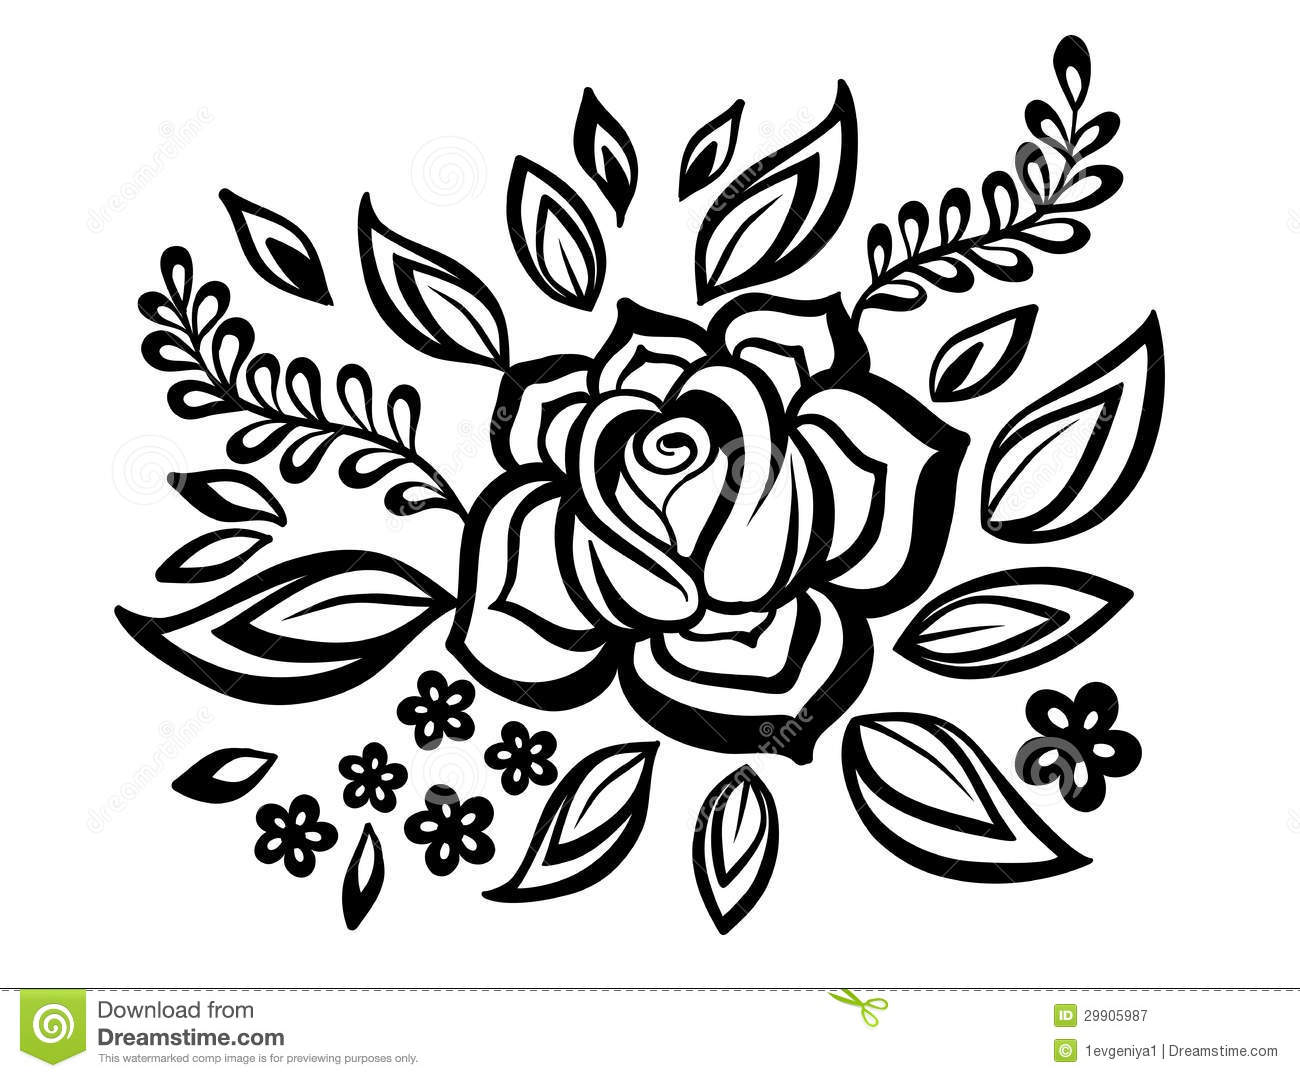 Ordinaire Royalty Free Stock Photo. Download Black And White Flowers And Leaves Design  Element With Imitation Guipure ...